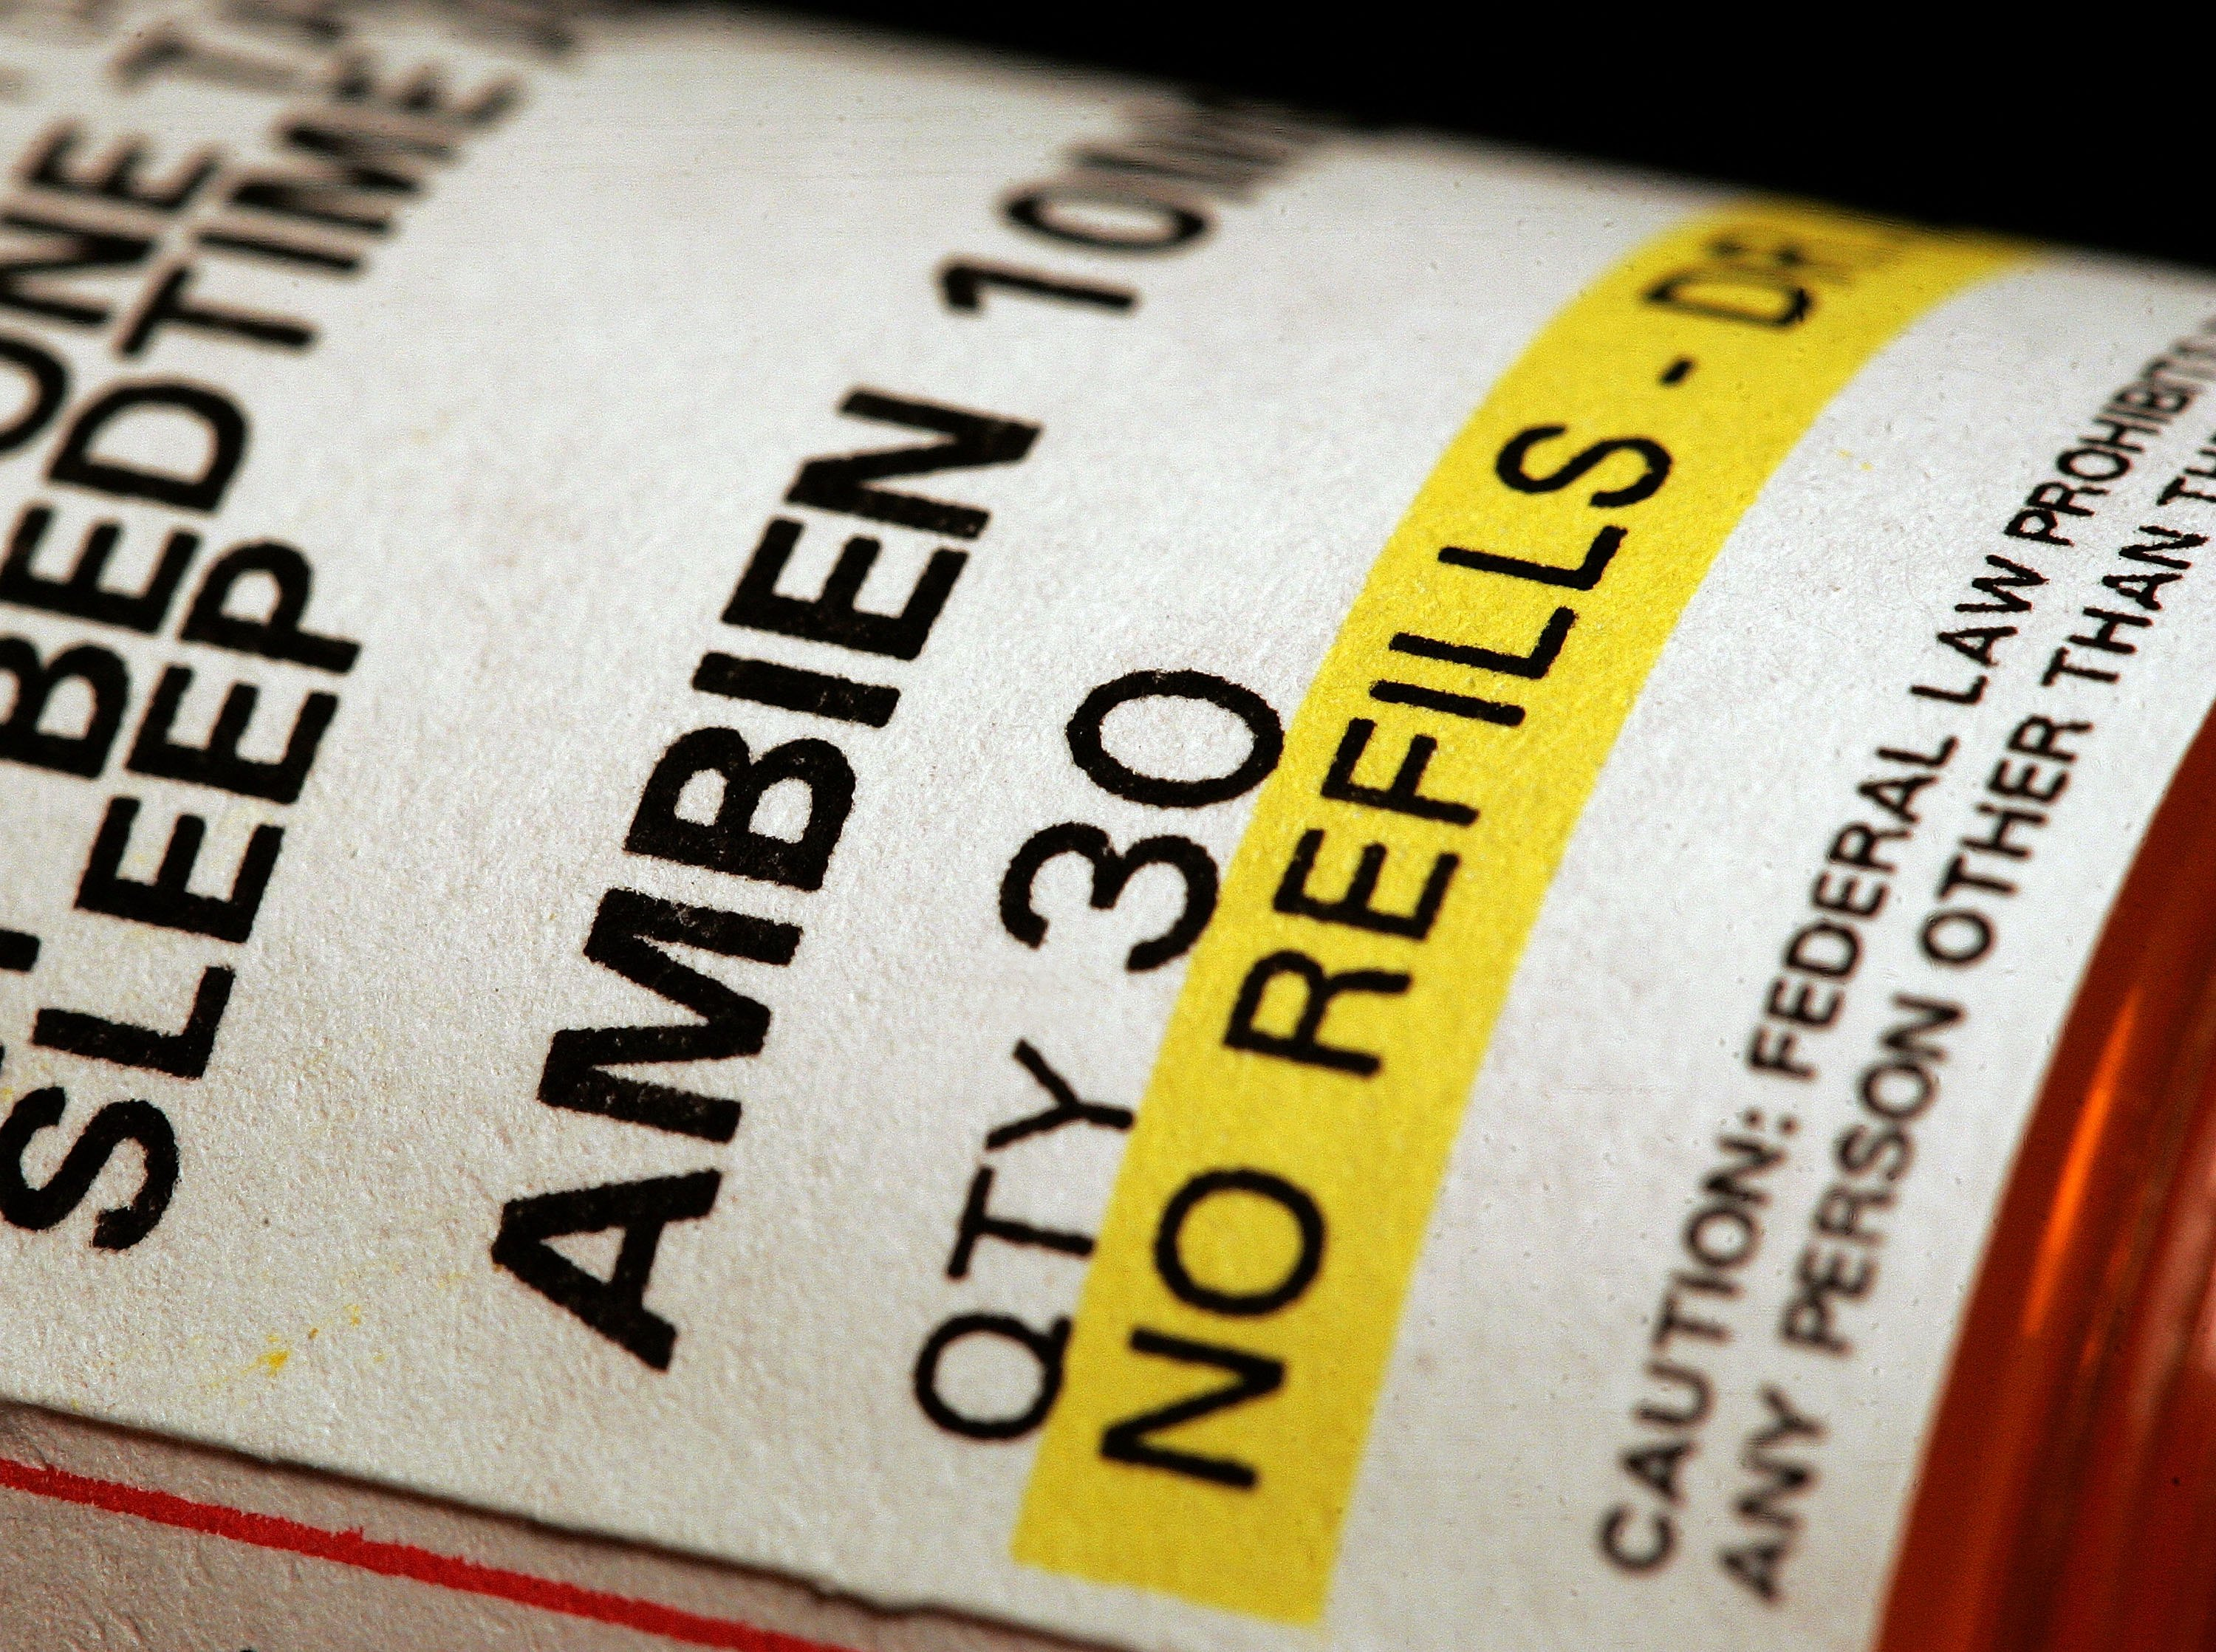 Best Generic Ambien 2020 New users of sleeping pills like Ambien, Restoril, Desyrel, have